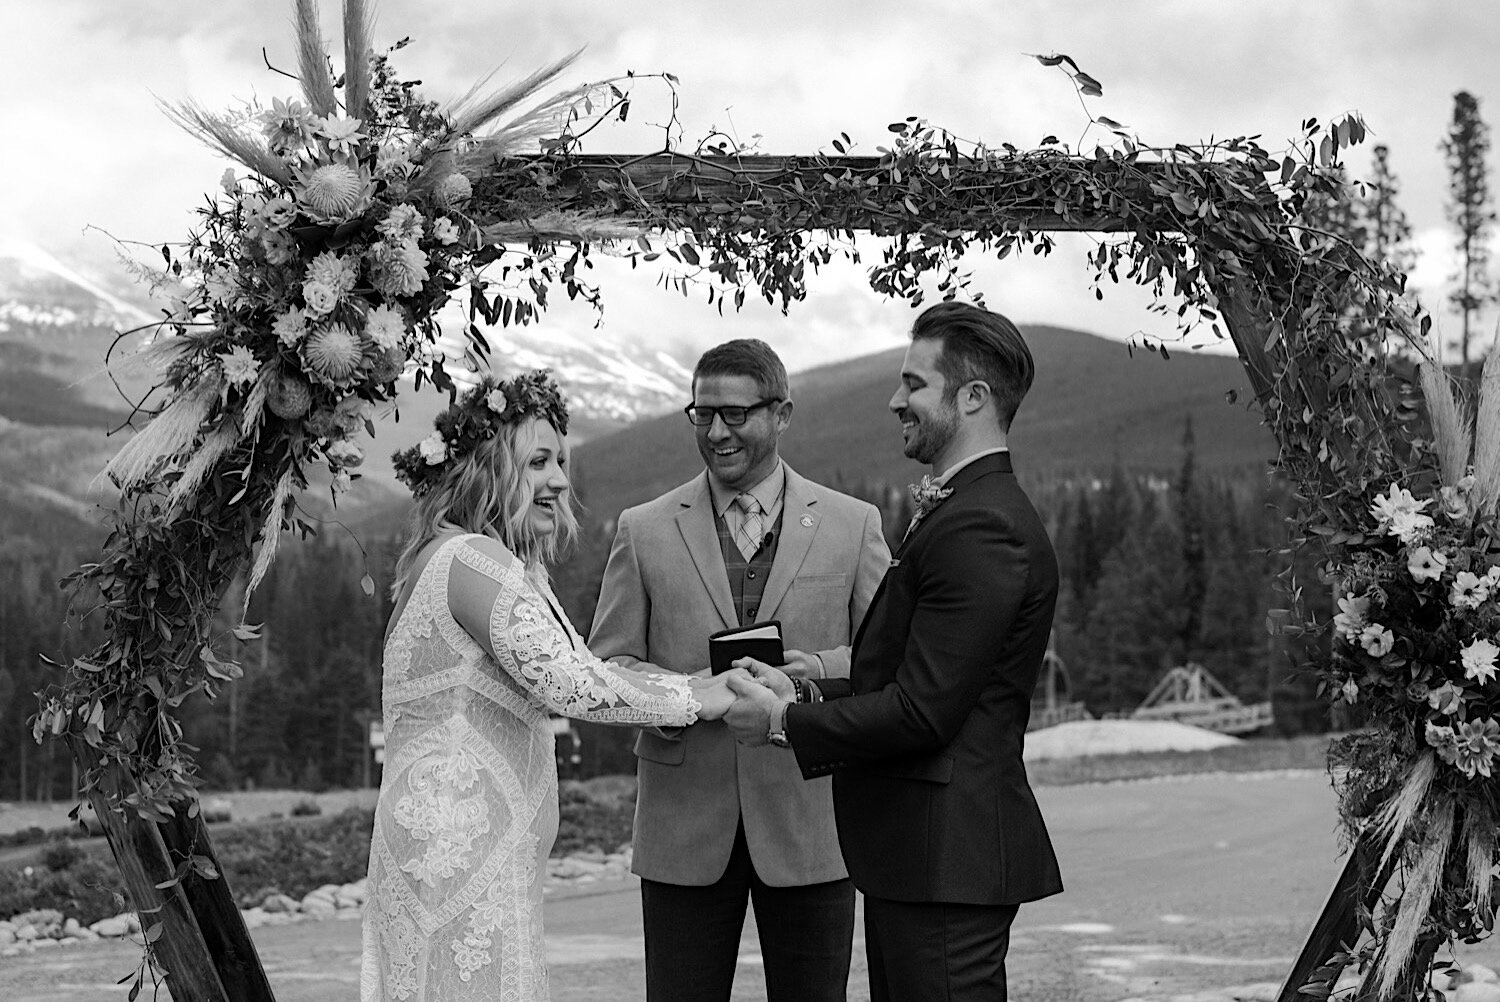 Breckenridge Colorado Wedding Photographer, Breckenridge Wedding Photographer, Breckenridge Colorado Wedding, Colorado Mountain Wedding, Breckenridge Resorts Wedding, Tenmile Station Wedding, Ten Mile Station Wedding, Tenmile Station Breckenridge, Ten Mile Station Breckenridge, Breckenridge Colorado Resort, Colorado Mountain Wedding Photographer, Colorado Wedding Ideas, Colorado Wedding Inspiration, Wedding Photography, Wedding Ideas, Mountain Wedding, Hexagon Wedding Arch, Wedding Ceremony